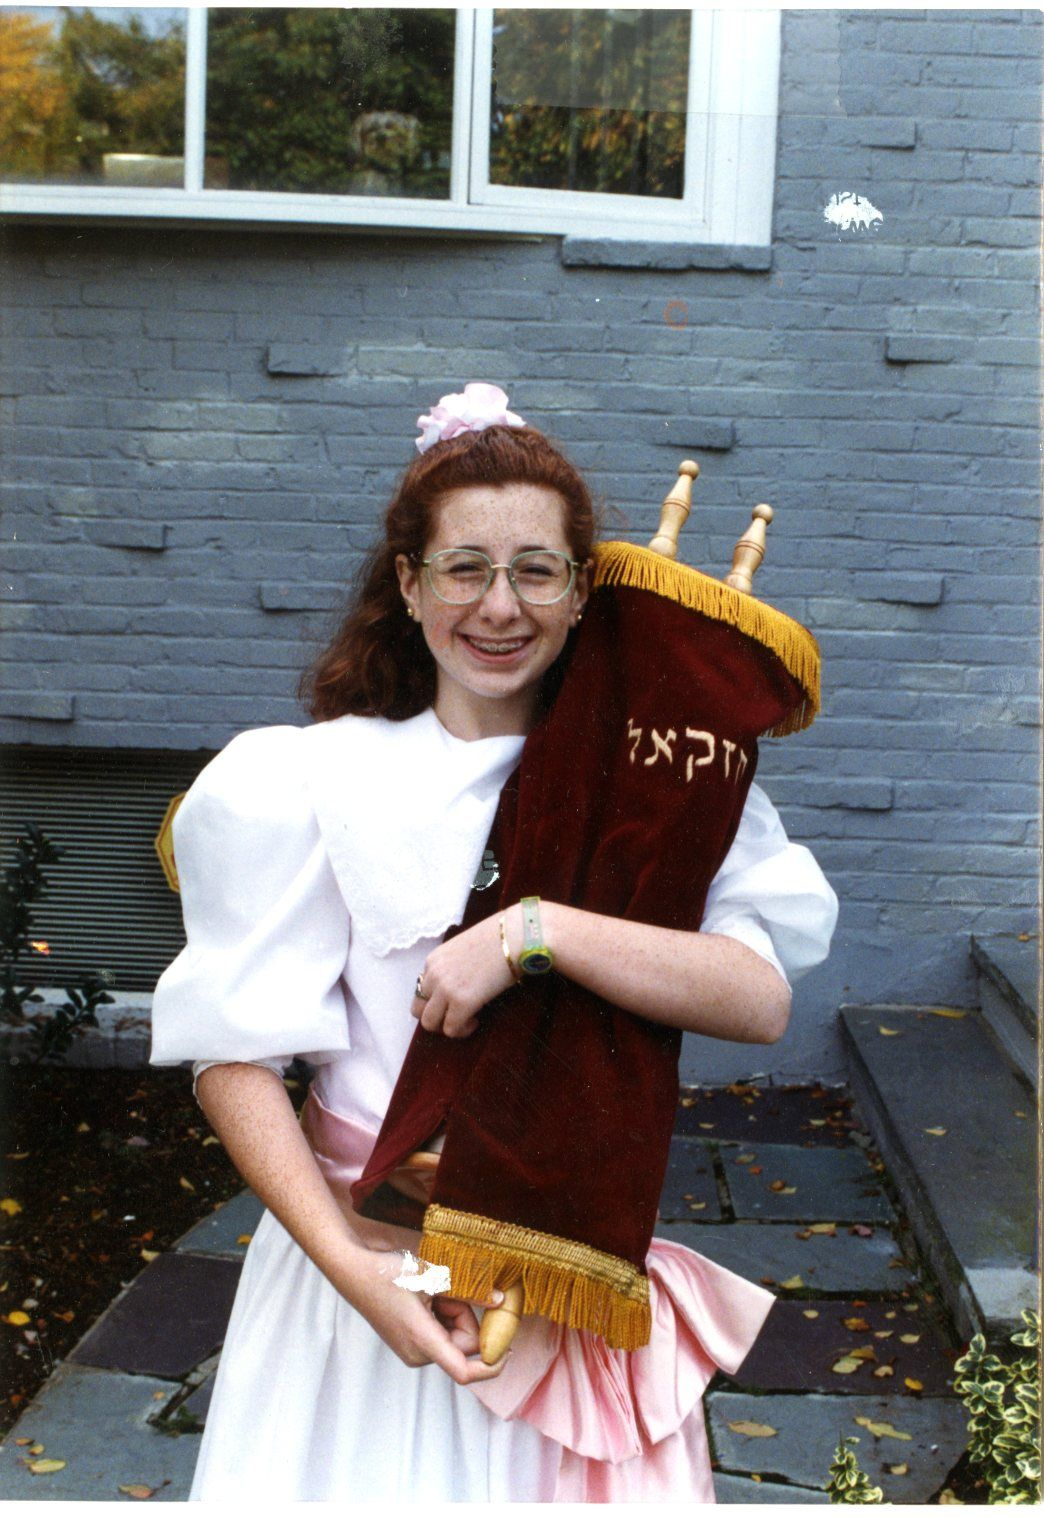 The author on her bat mitzvah day. (click to enlarge)